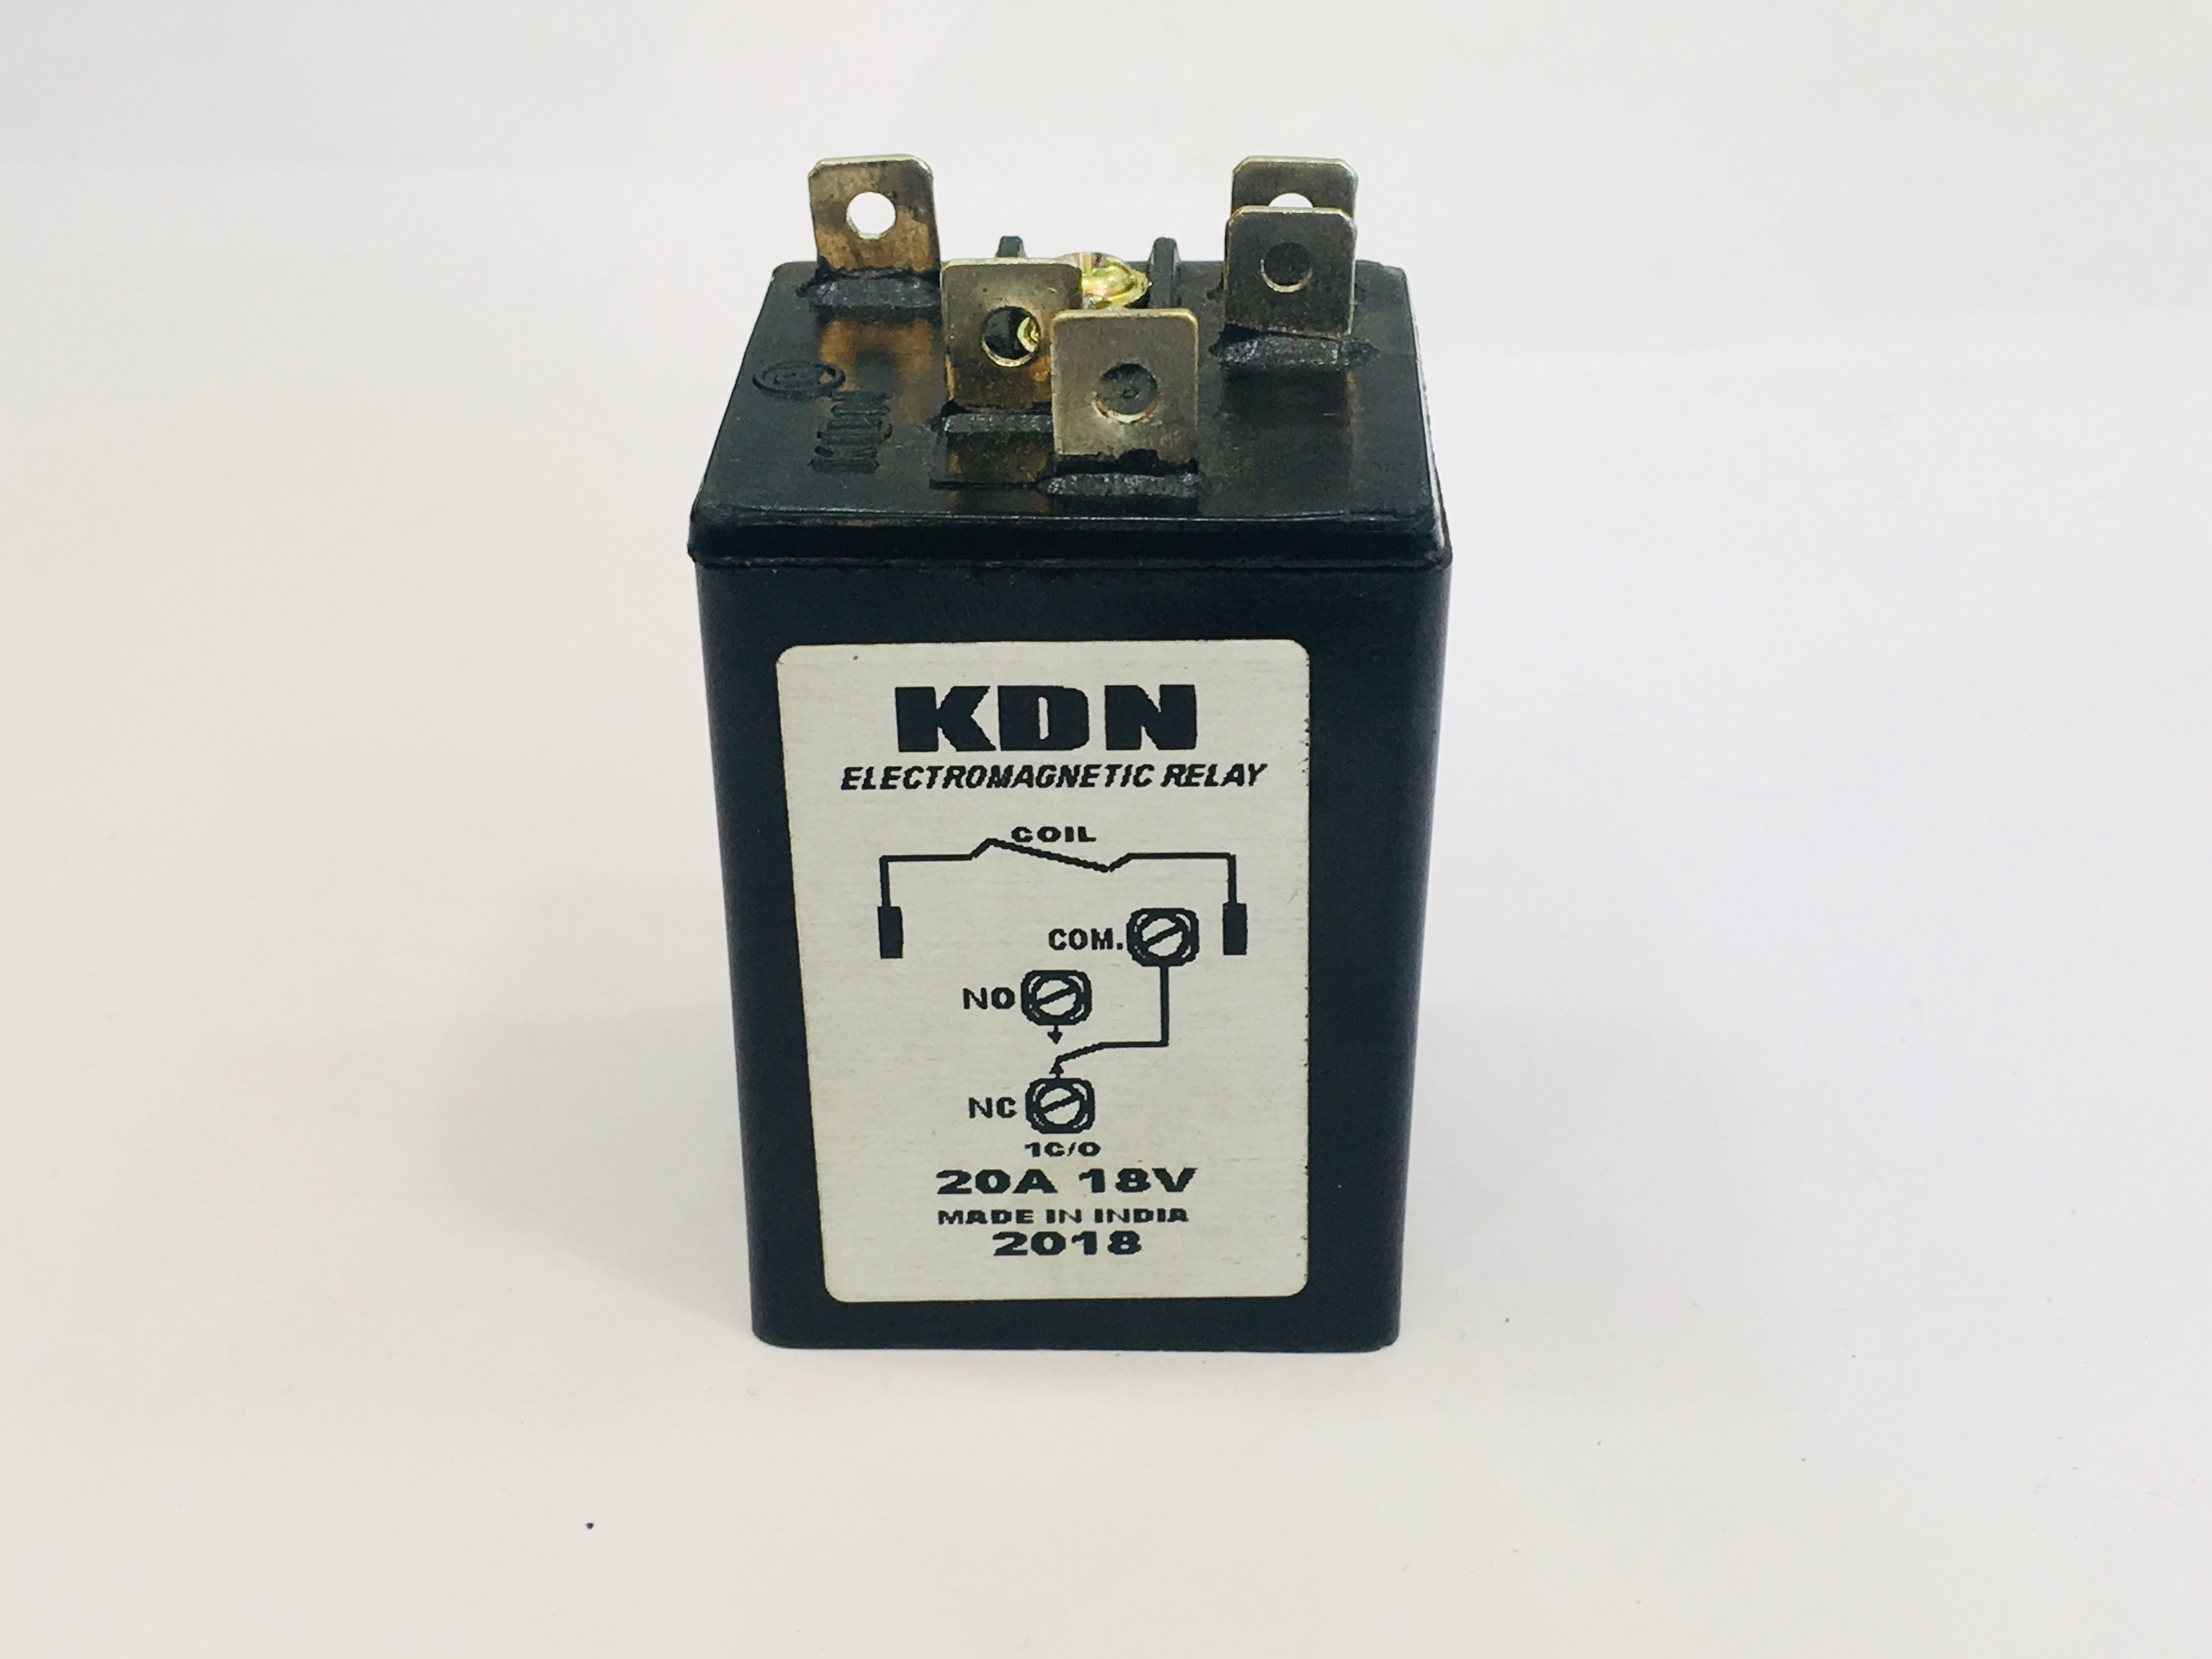 20A 18V Electromagnetic Relay